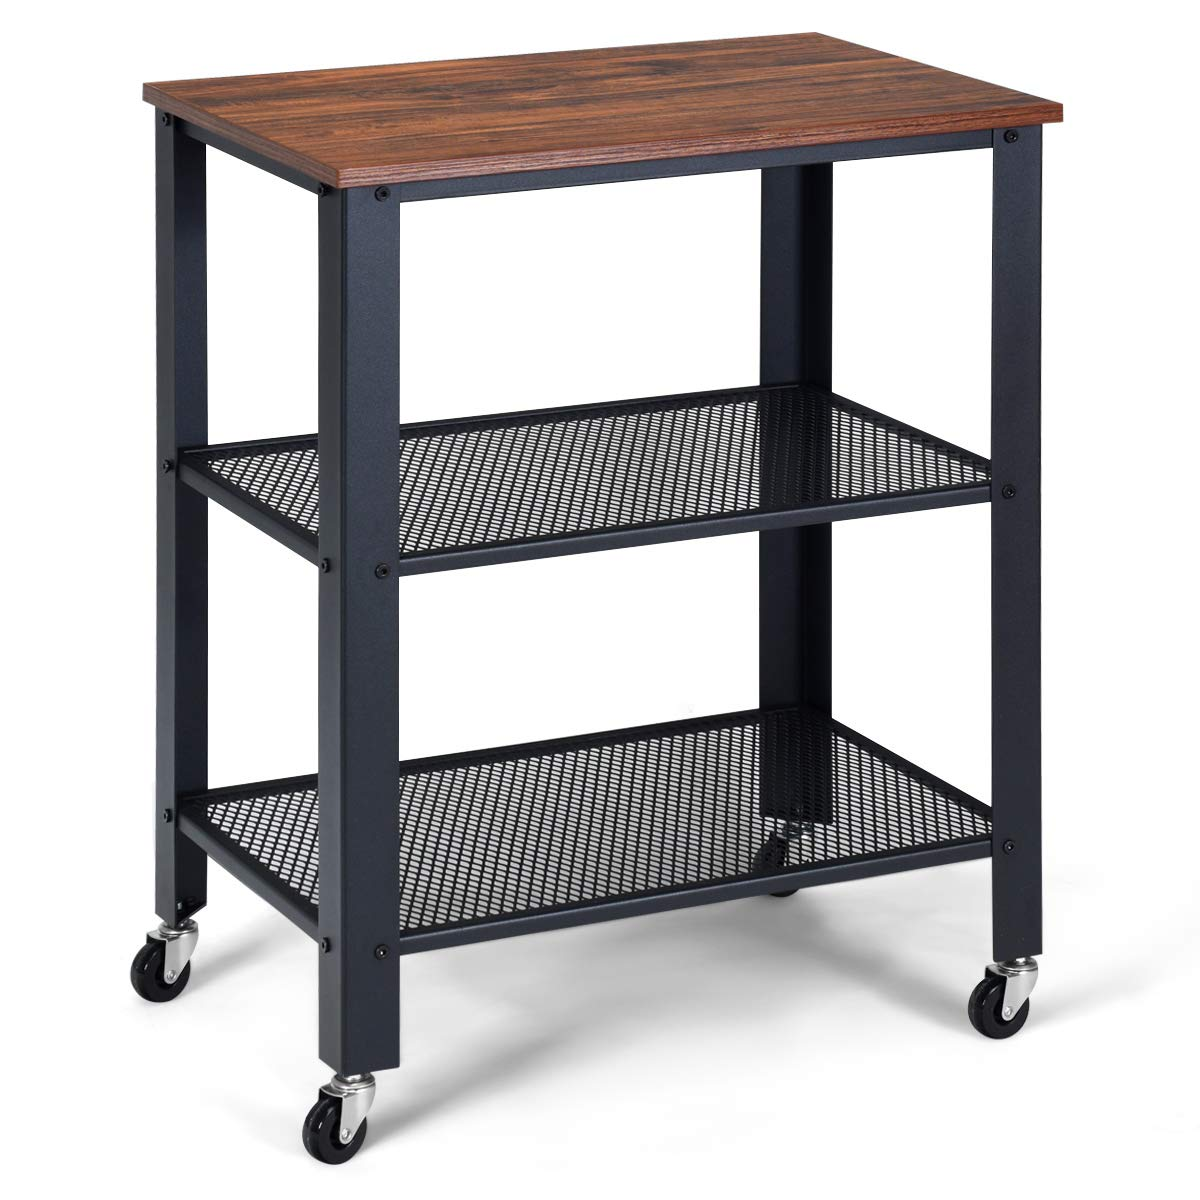 Giantex Microwave Cart Wooden 3-Tier W Storage Shelf and Rolling Casters, Industrial Style Metal Frame for Kitchen, Living Room Accent Furniture for Living Room Rolling Serving Cart Net-Brown